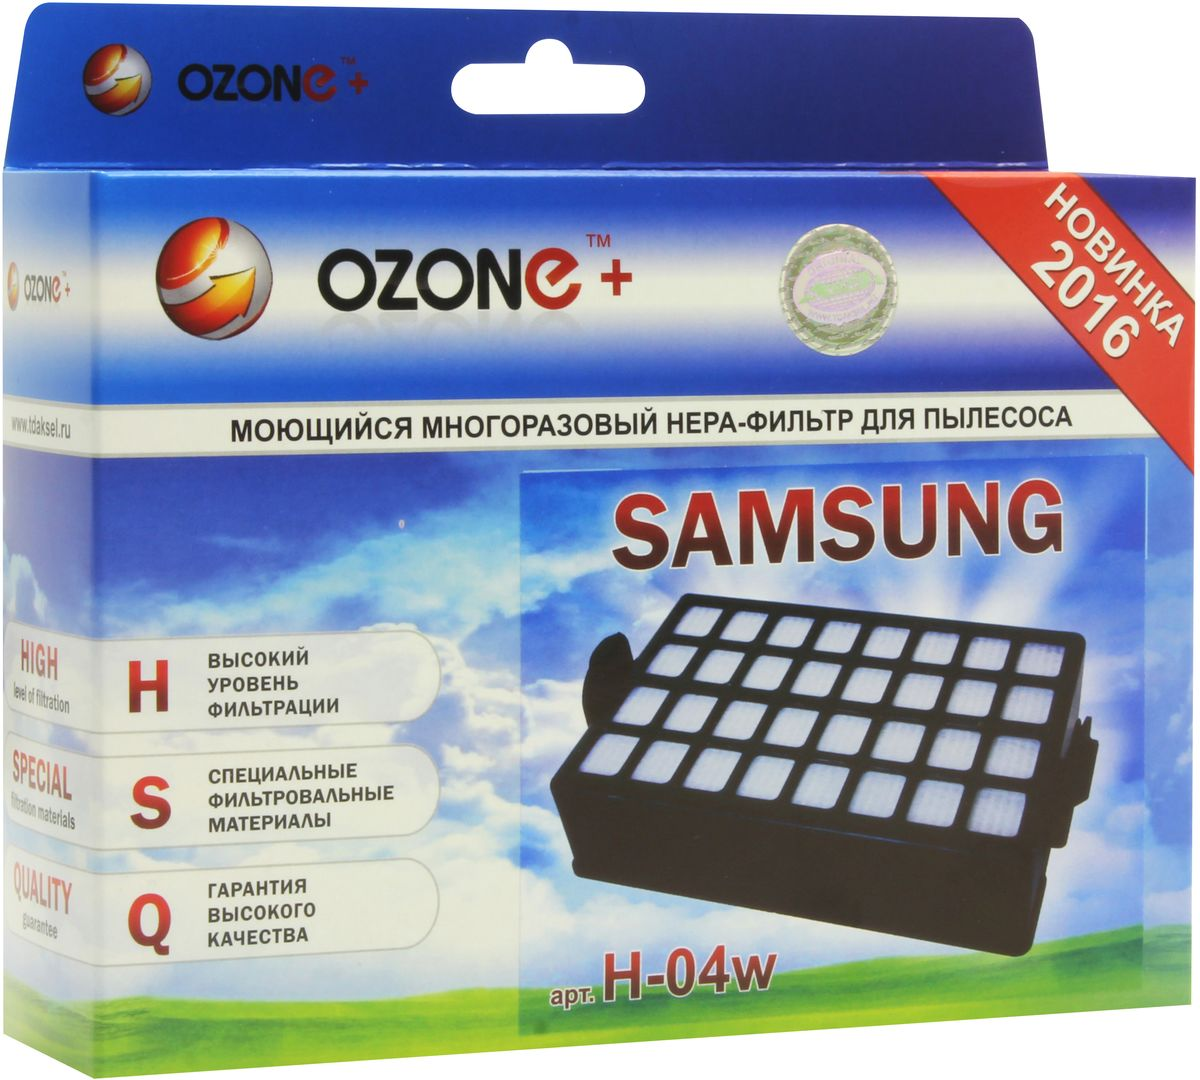 Ozone H-04W HEPA фильтр для пылесосов Samsung 12vdc 5000mg h efficient water treatment ozone generator ozone disinfection kit